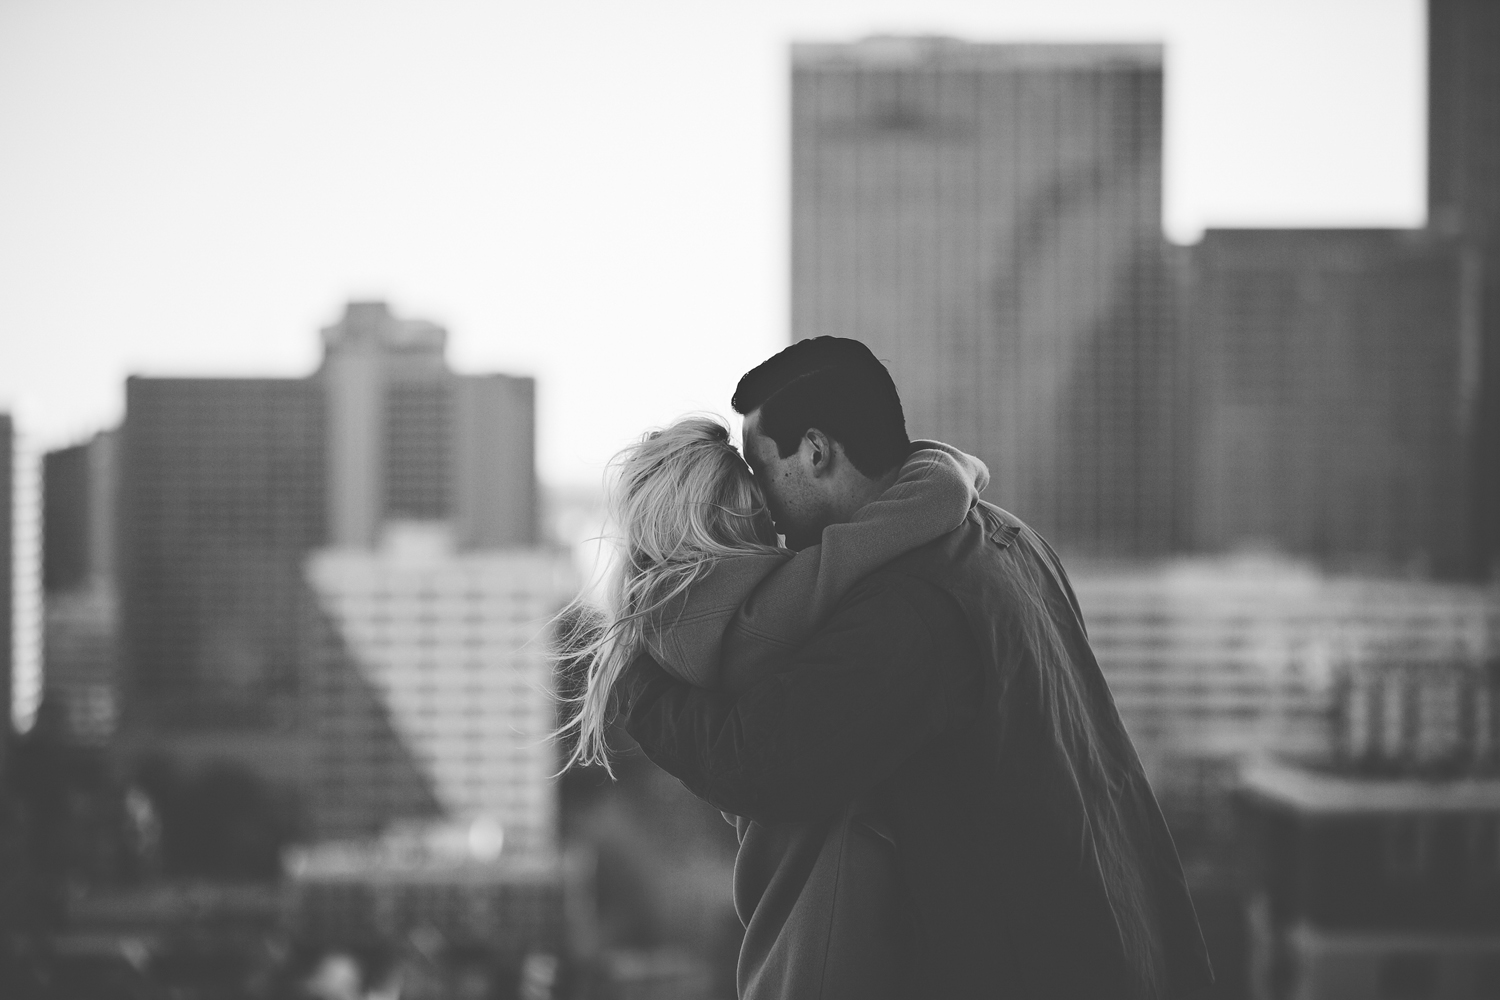 KDP_claire&drew - the proposal-41.jpg